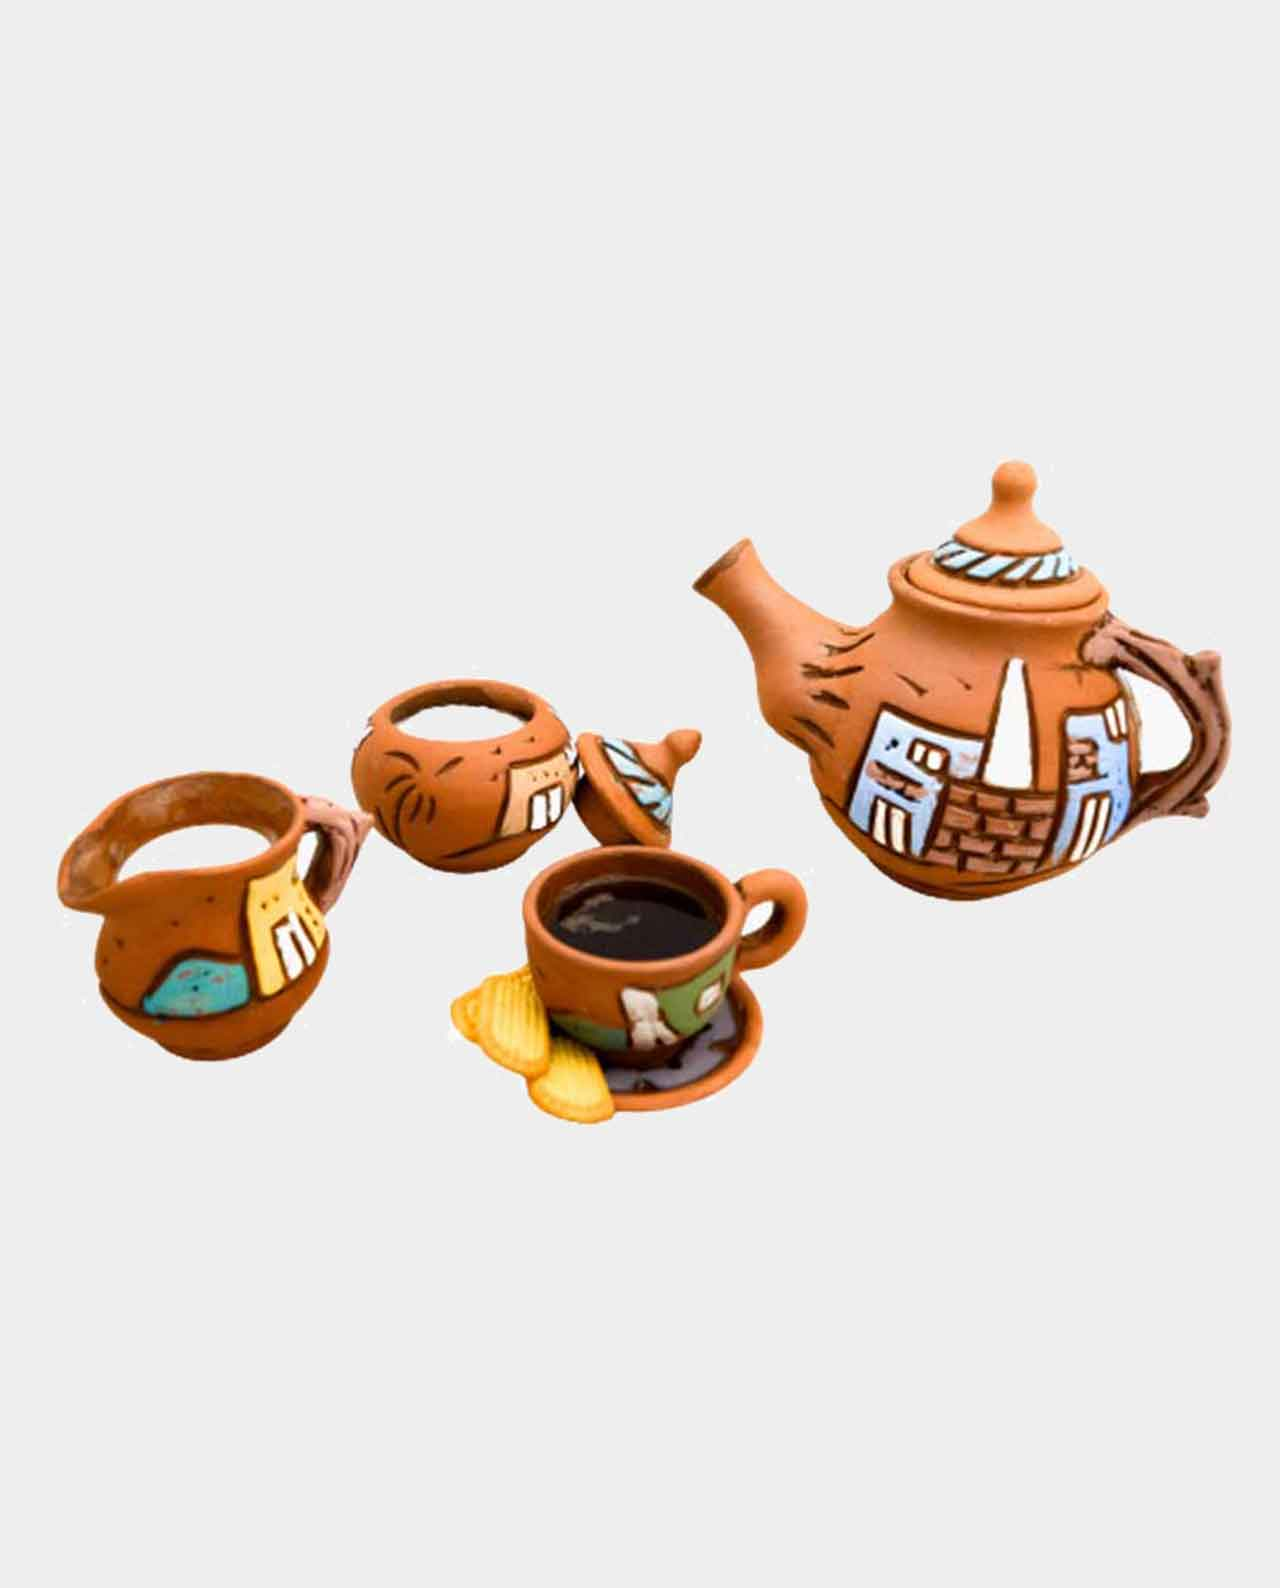 Natural healthy Tea Kettle with 6 cup tea with 6 dish with sugar bowl and Milk Jug handmade of 100% natural pottery